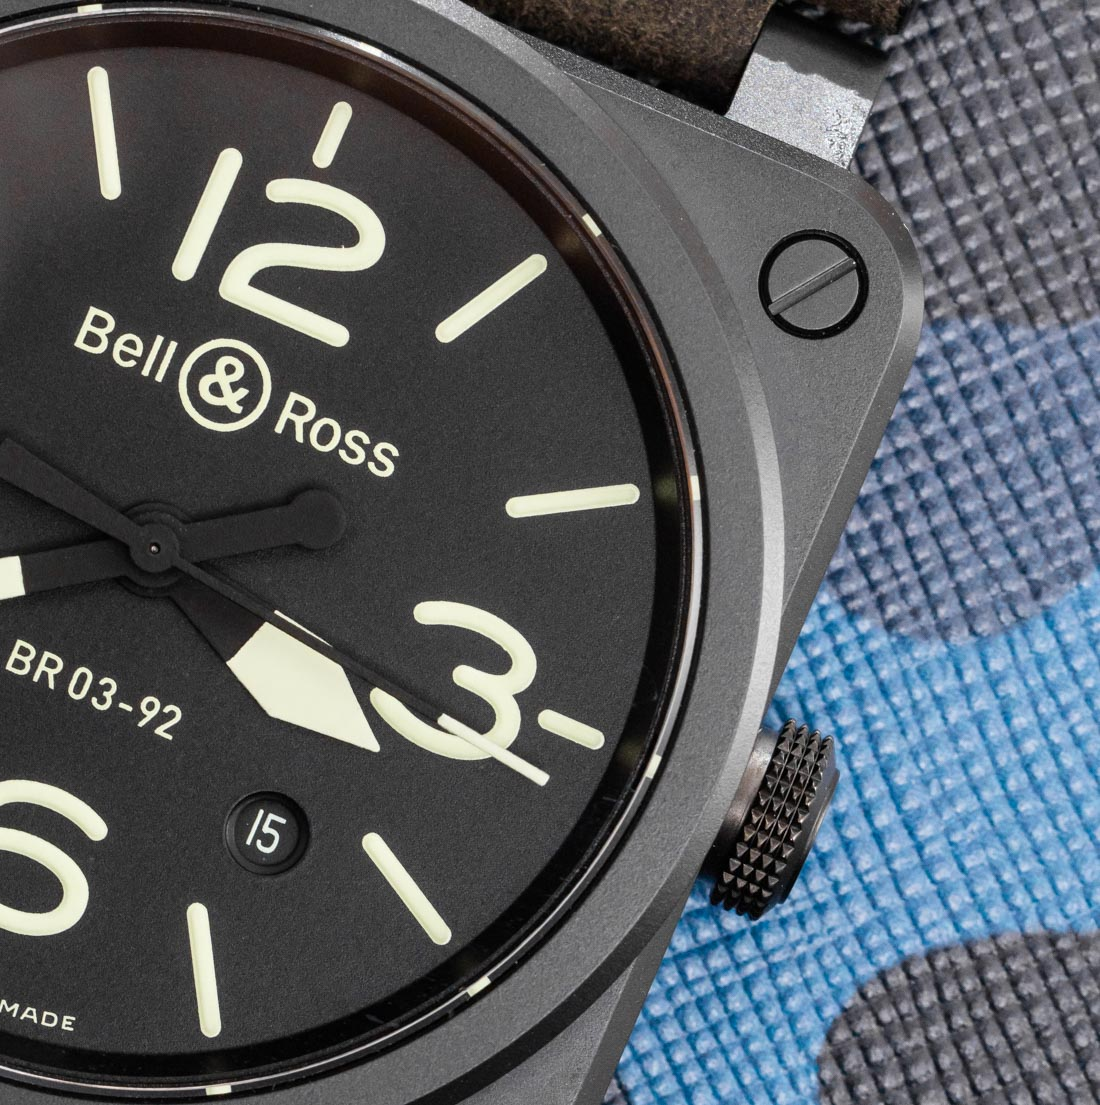 Bell and Ross Replica-ax